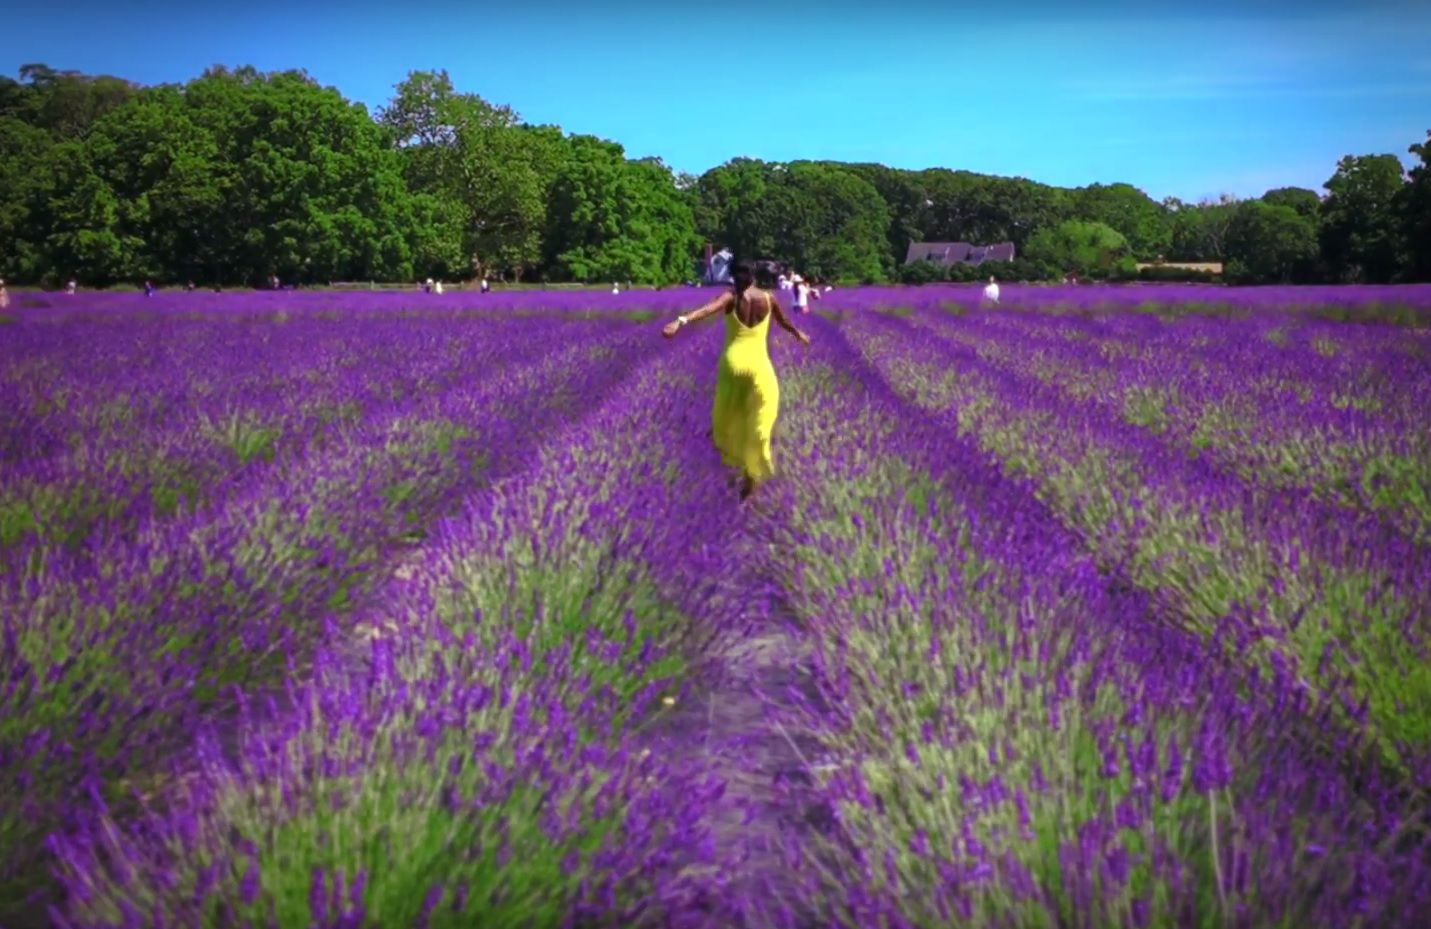 """""""Travelista Teri"""" takes a trip to a Lavender Farm on Long Island, NY in my article """"Escapade!!! Cyber Traveling with 'Travelista Teri', to Lavender by the Bay, Long Island"""